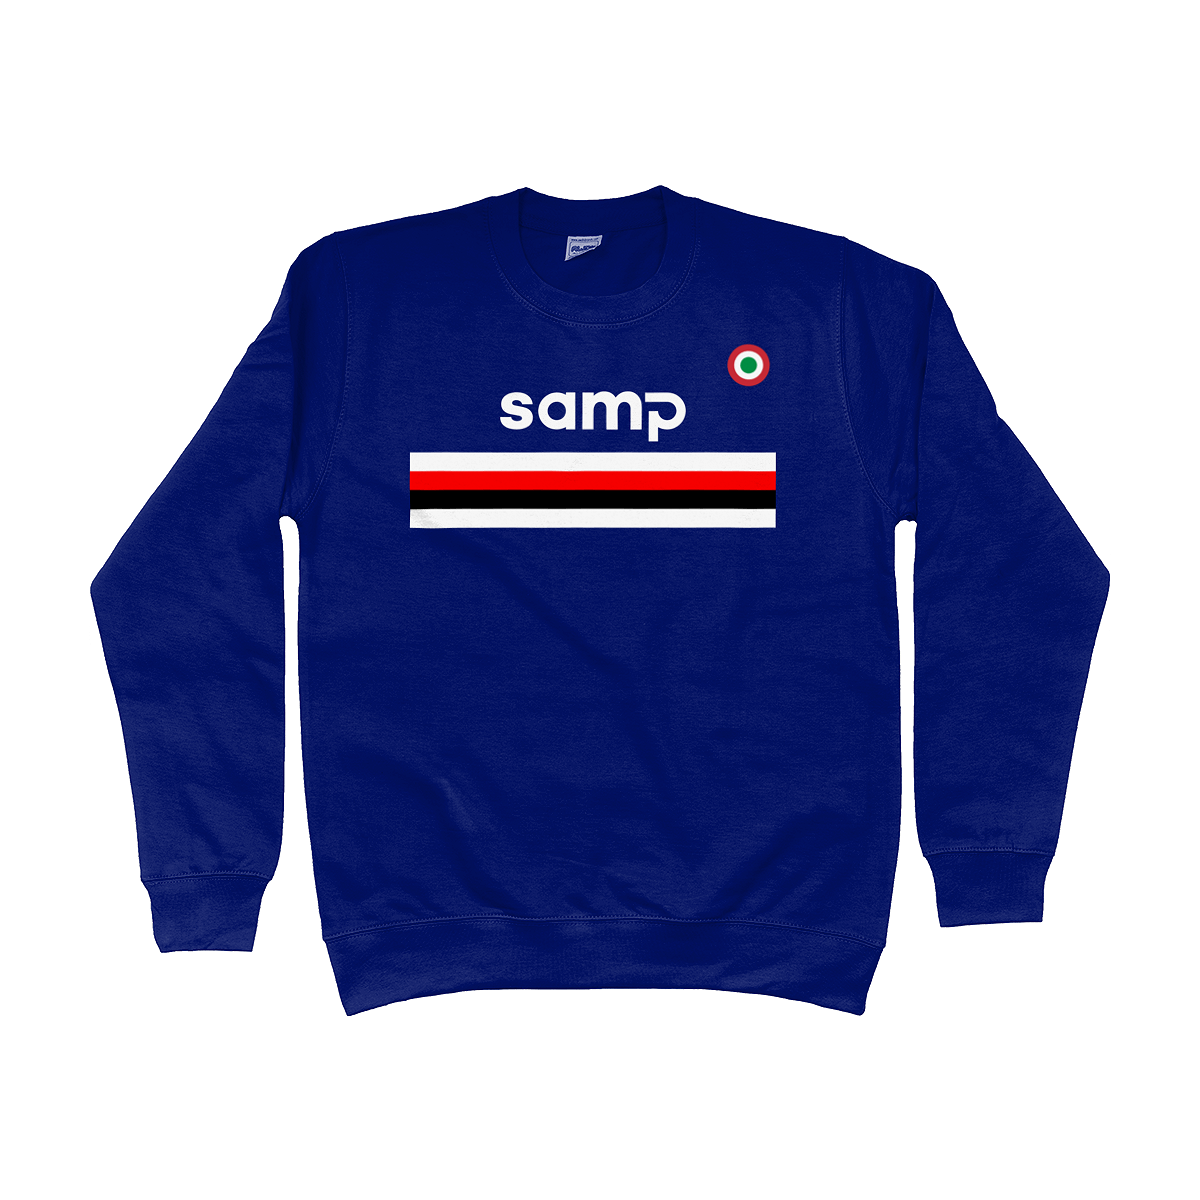 Sampdoria 86 Sweatshirt